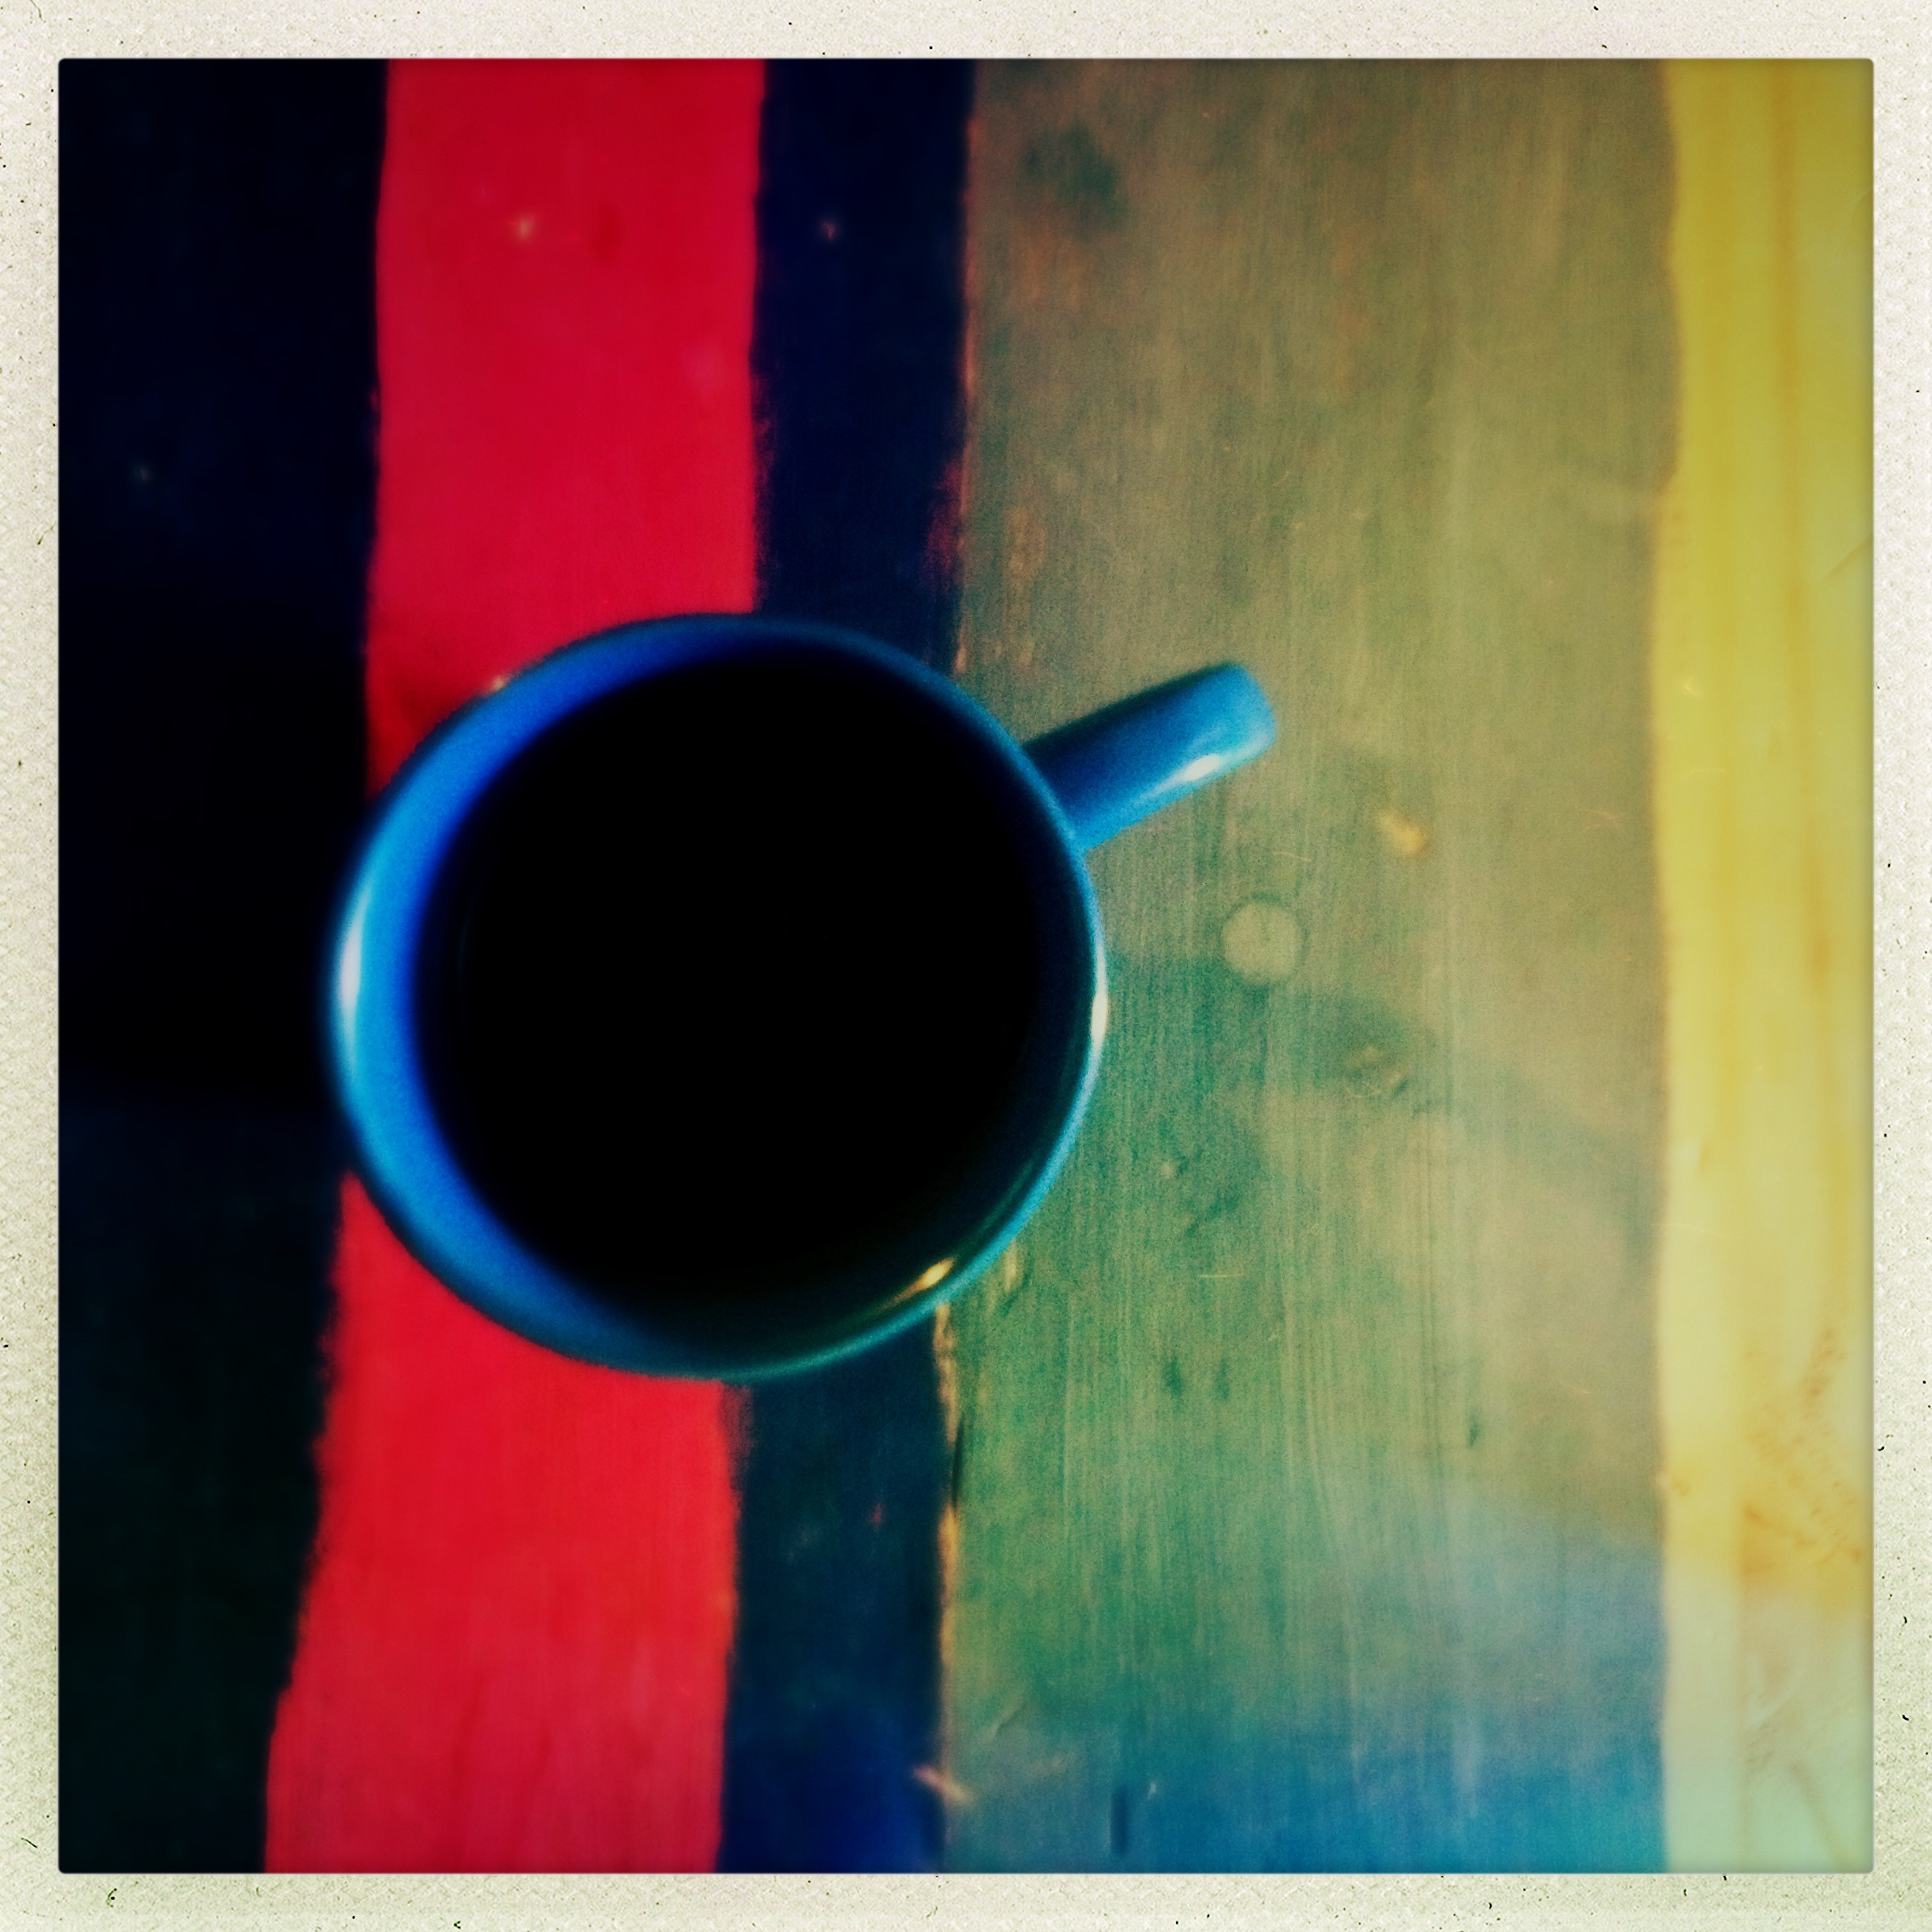 [Image du Jour] One more cup of coffee